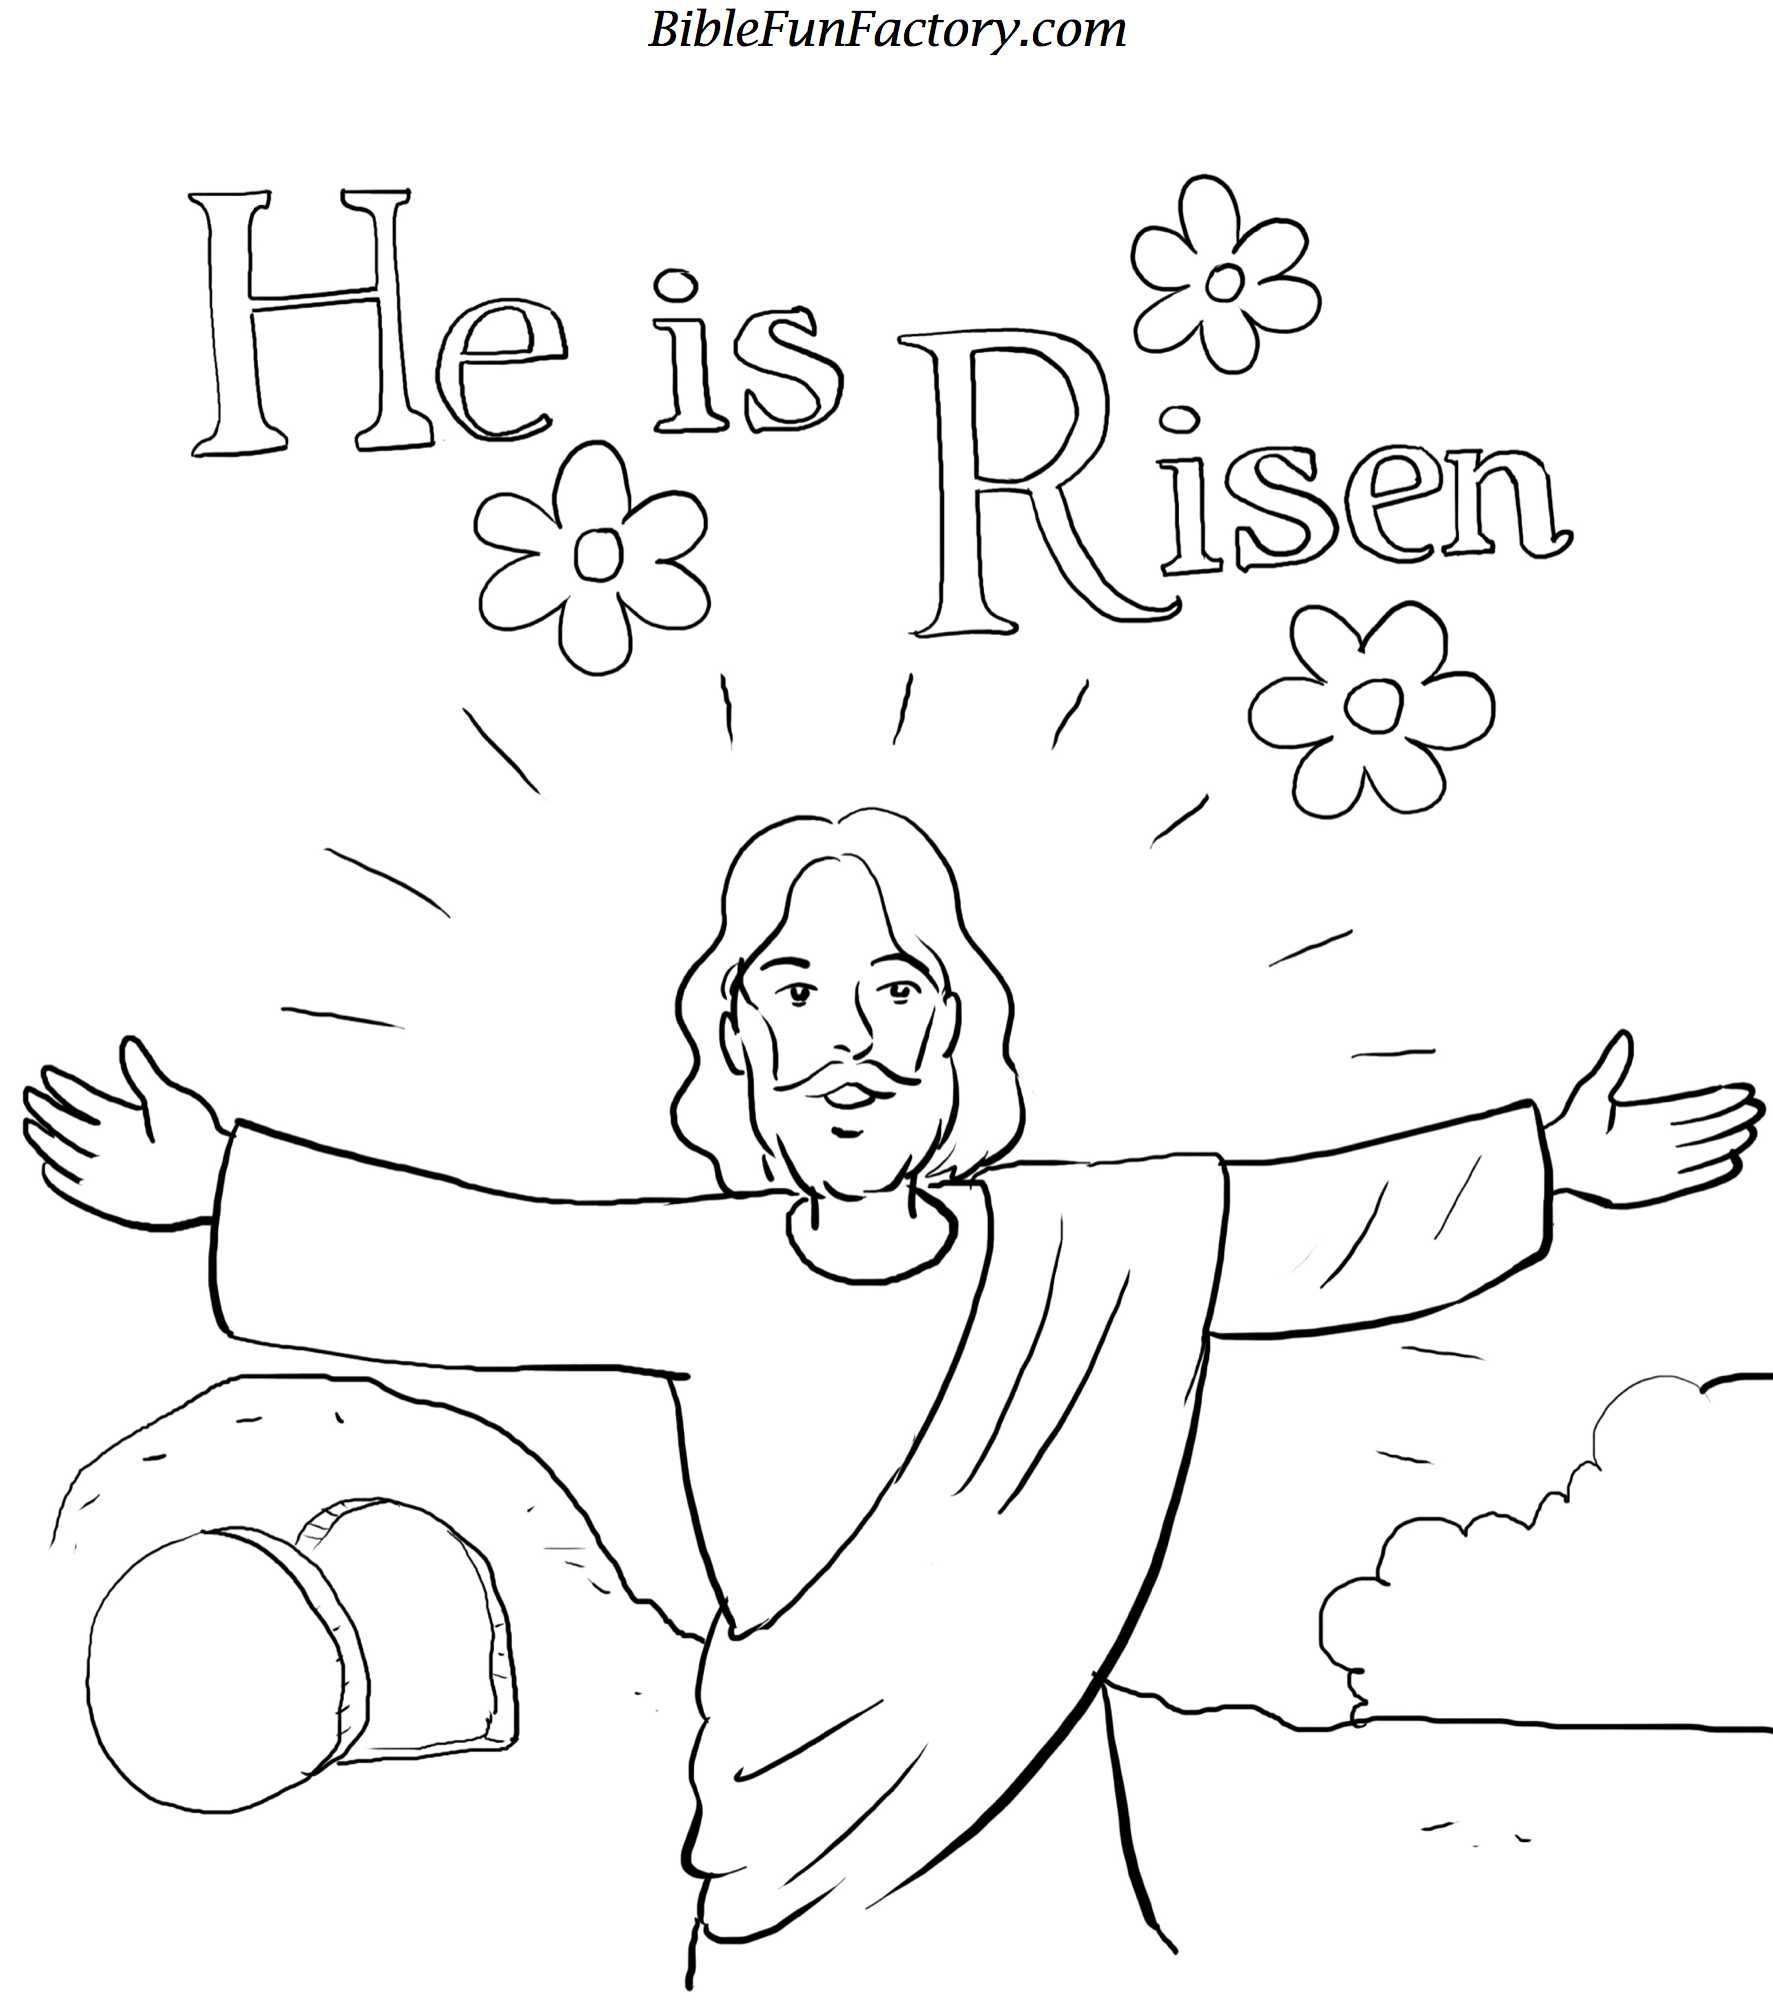 Resurrection coloring pages free easter coloring sheet